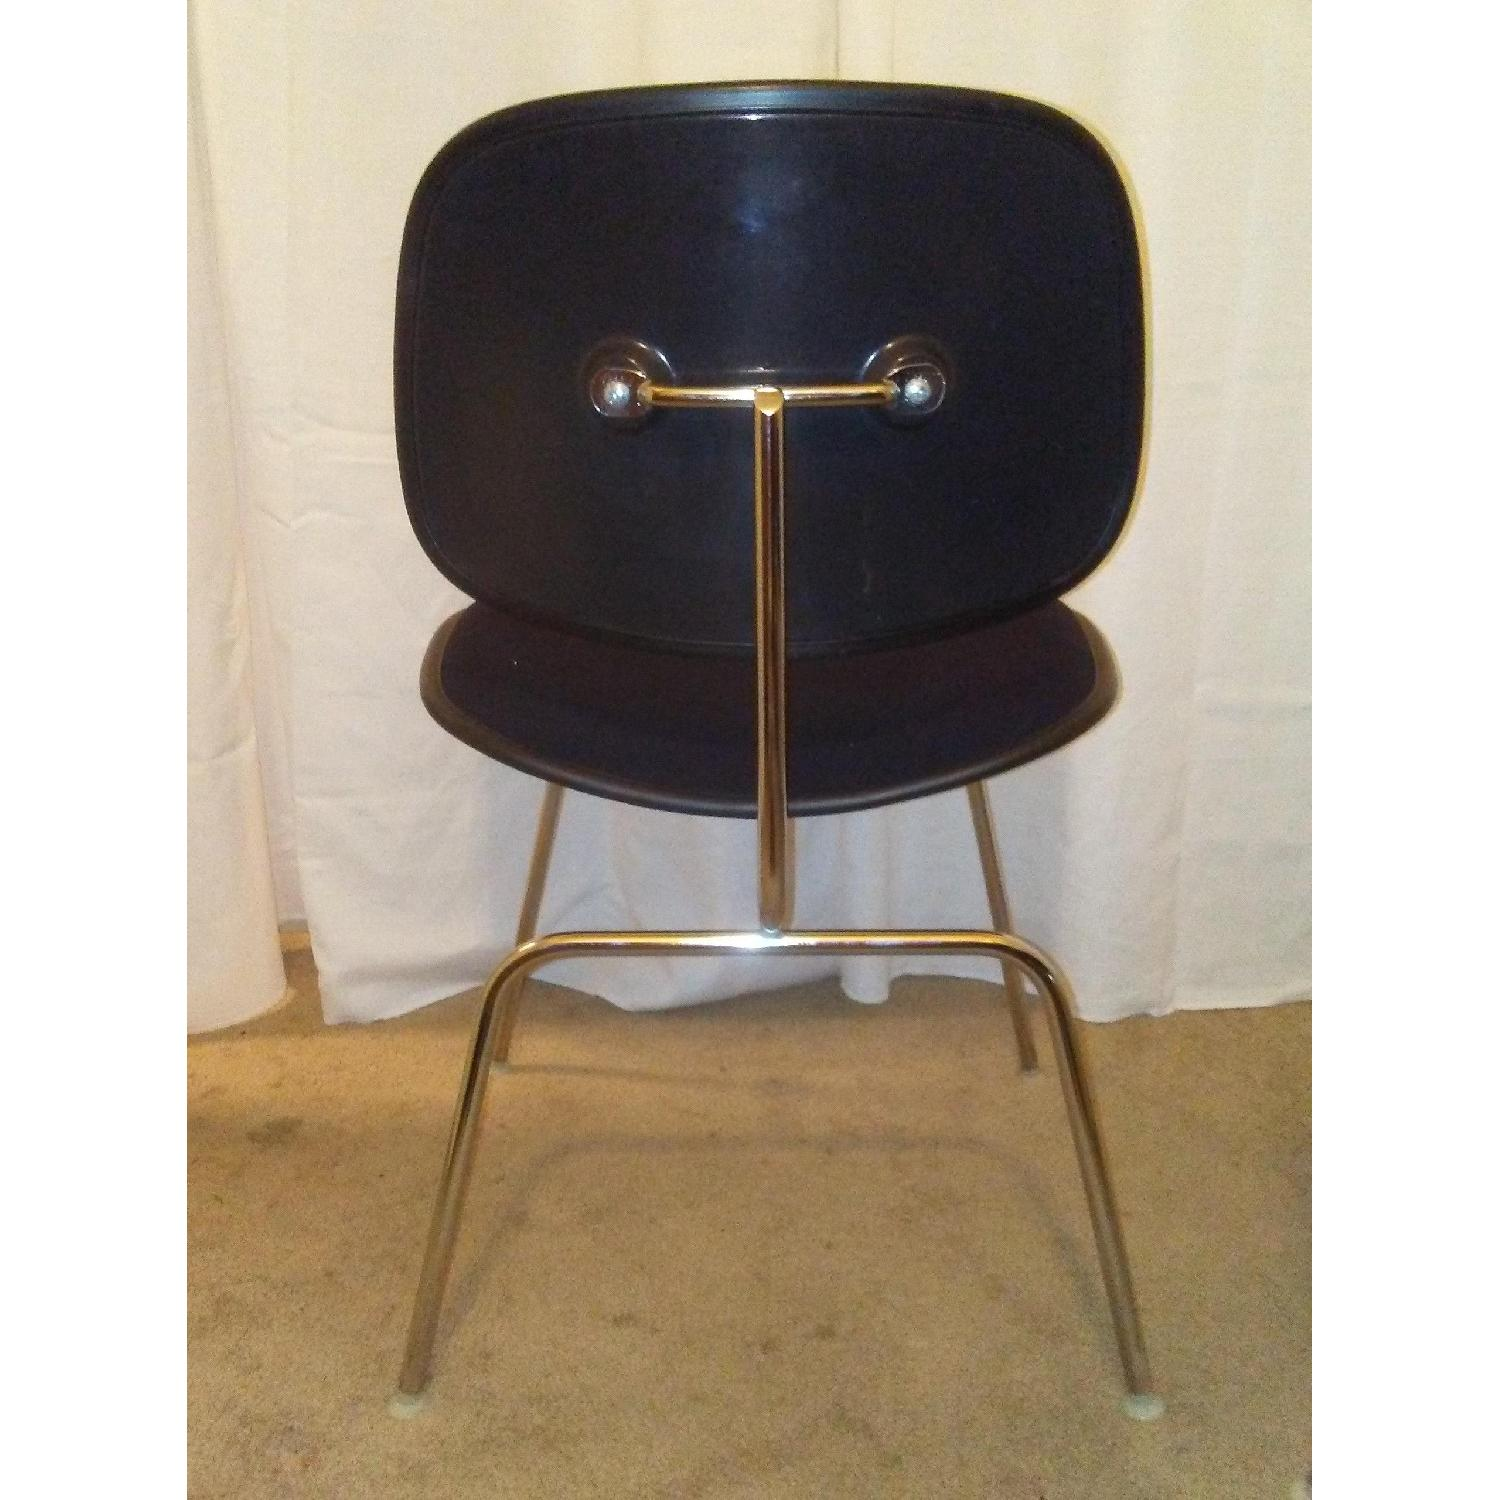 Herman Miller c.1992 Charles Eames Dining/Accent Chairs - image-4